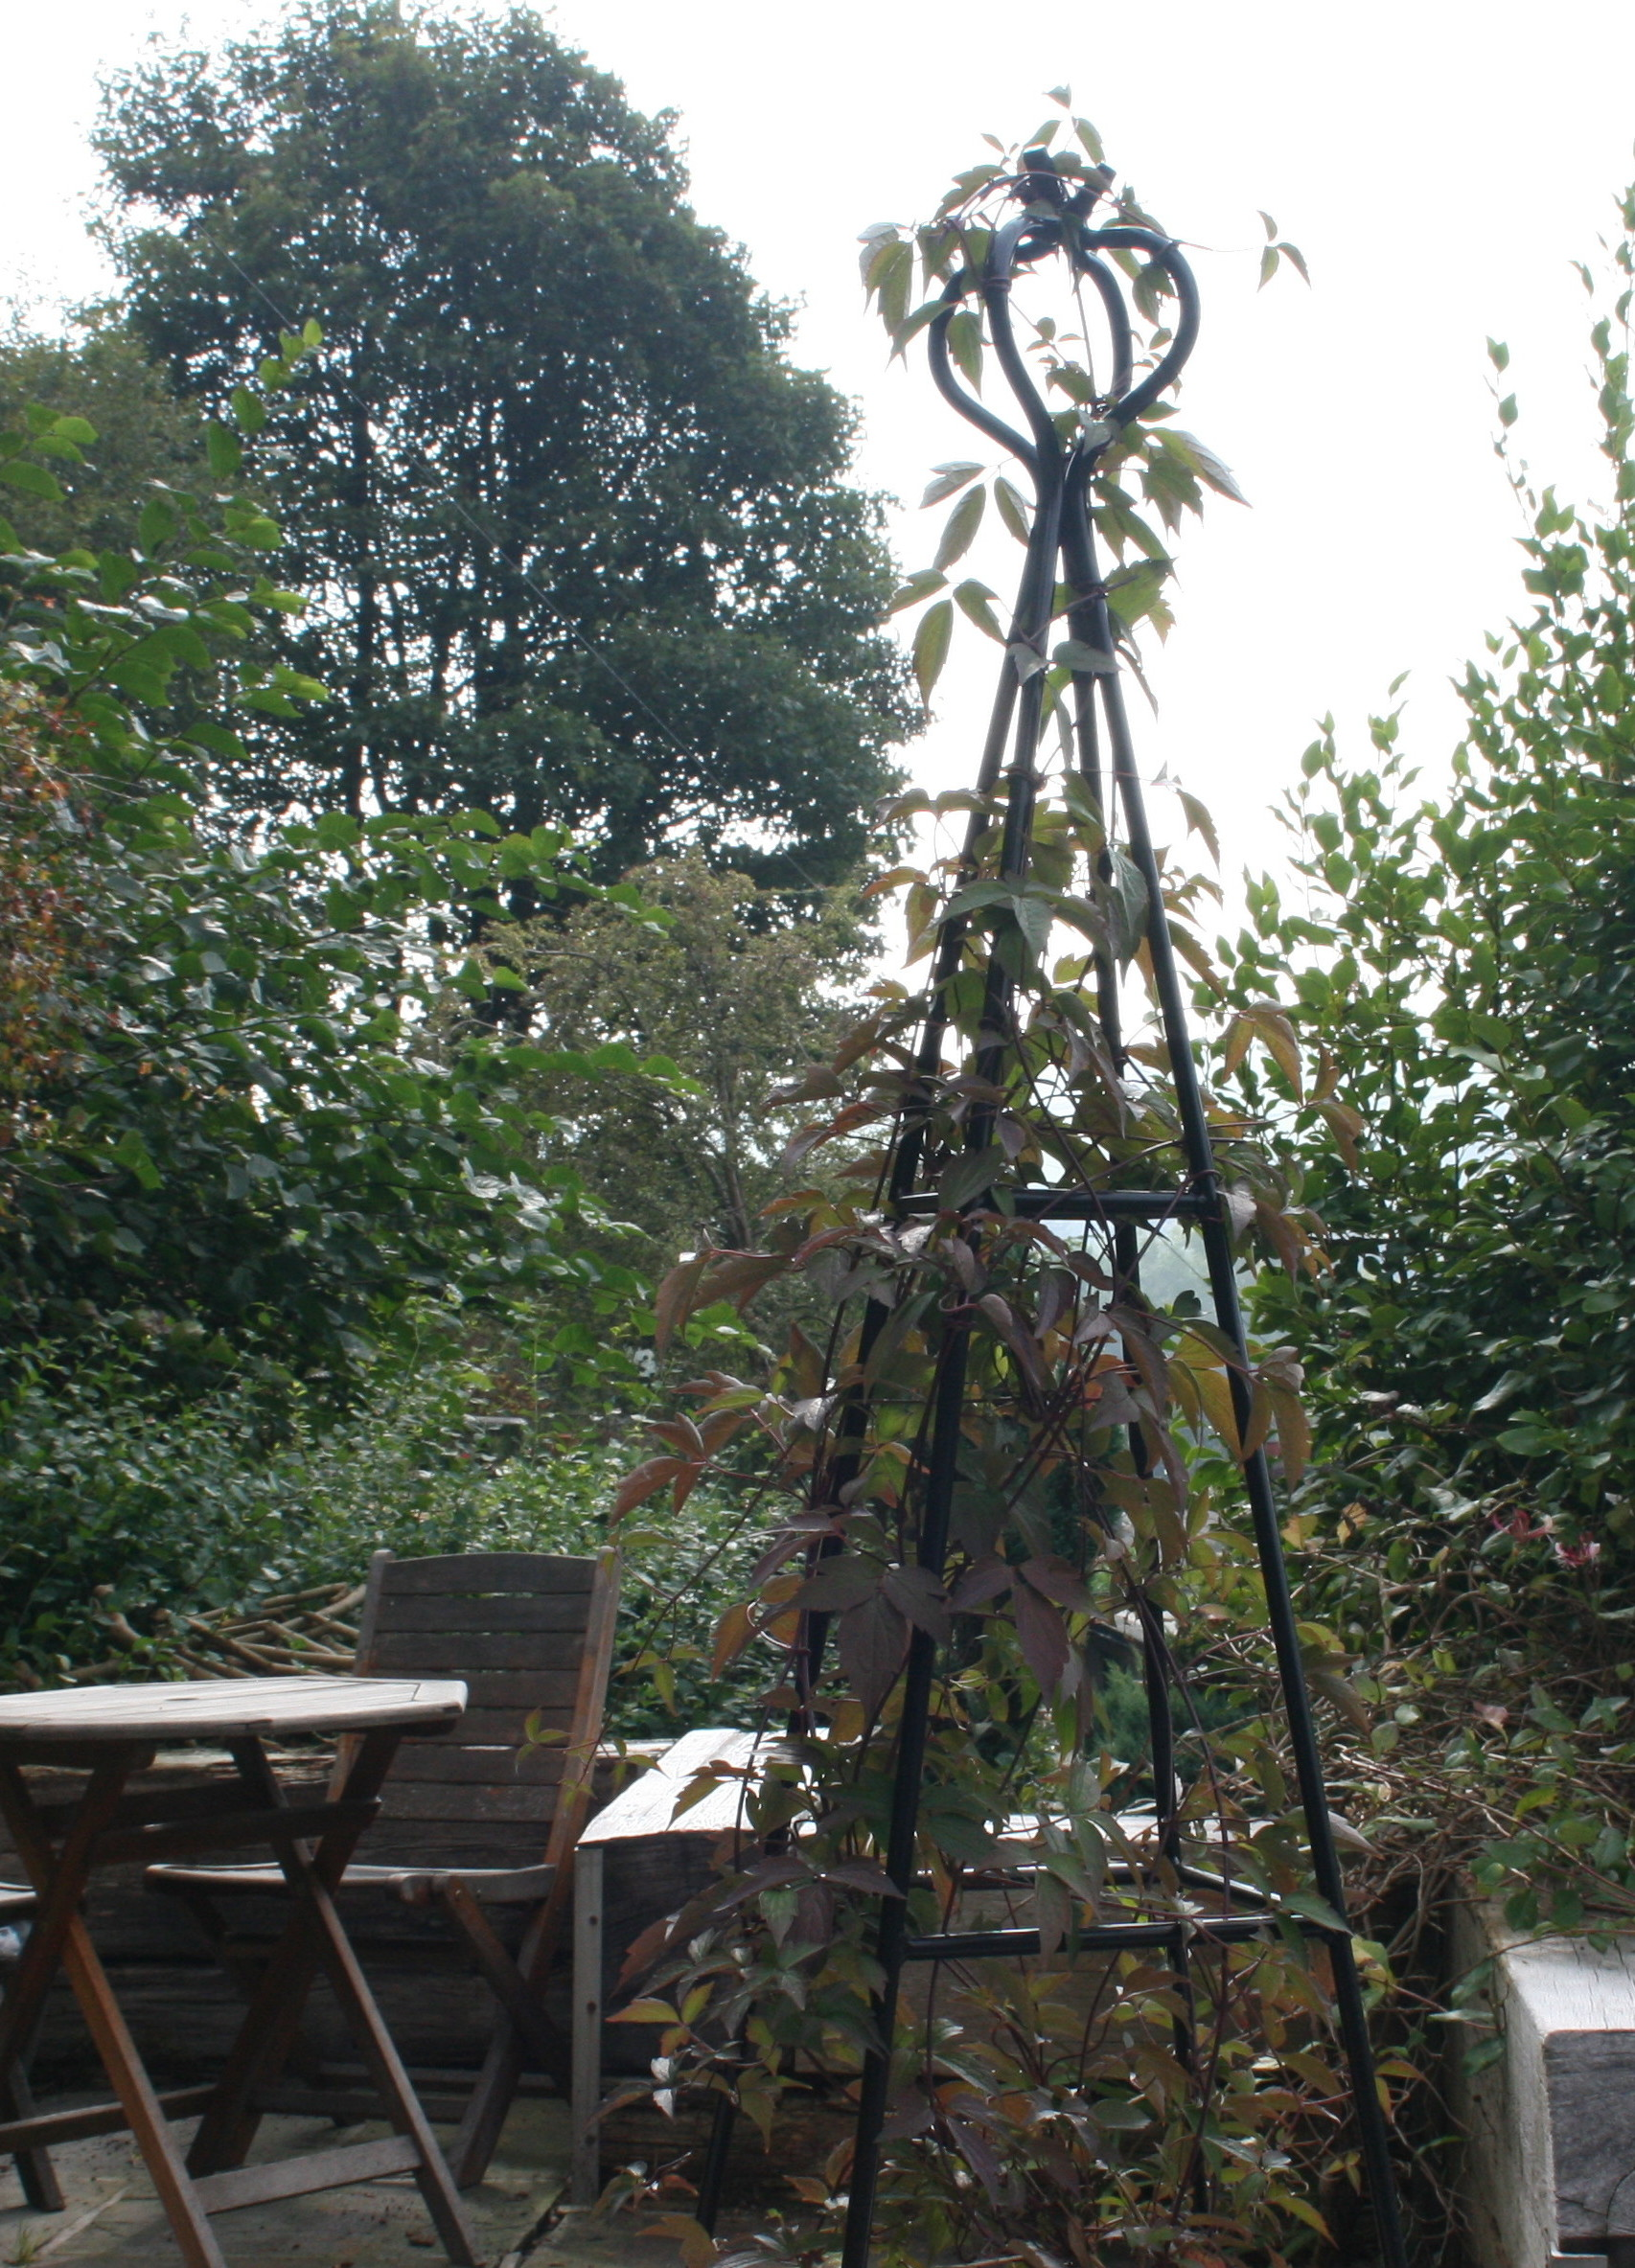 Obelisks Garden Features Ideas